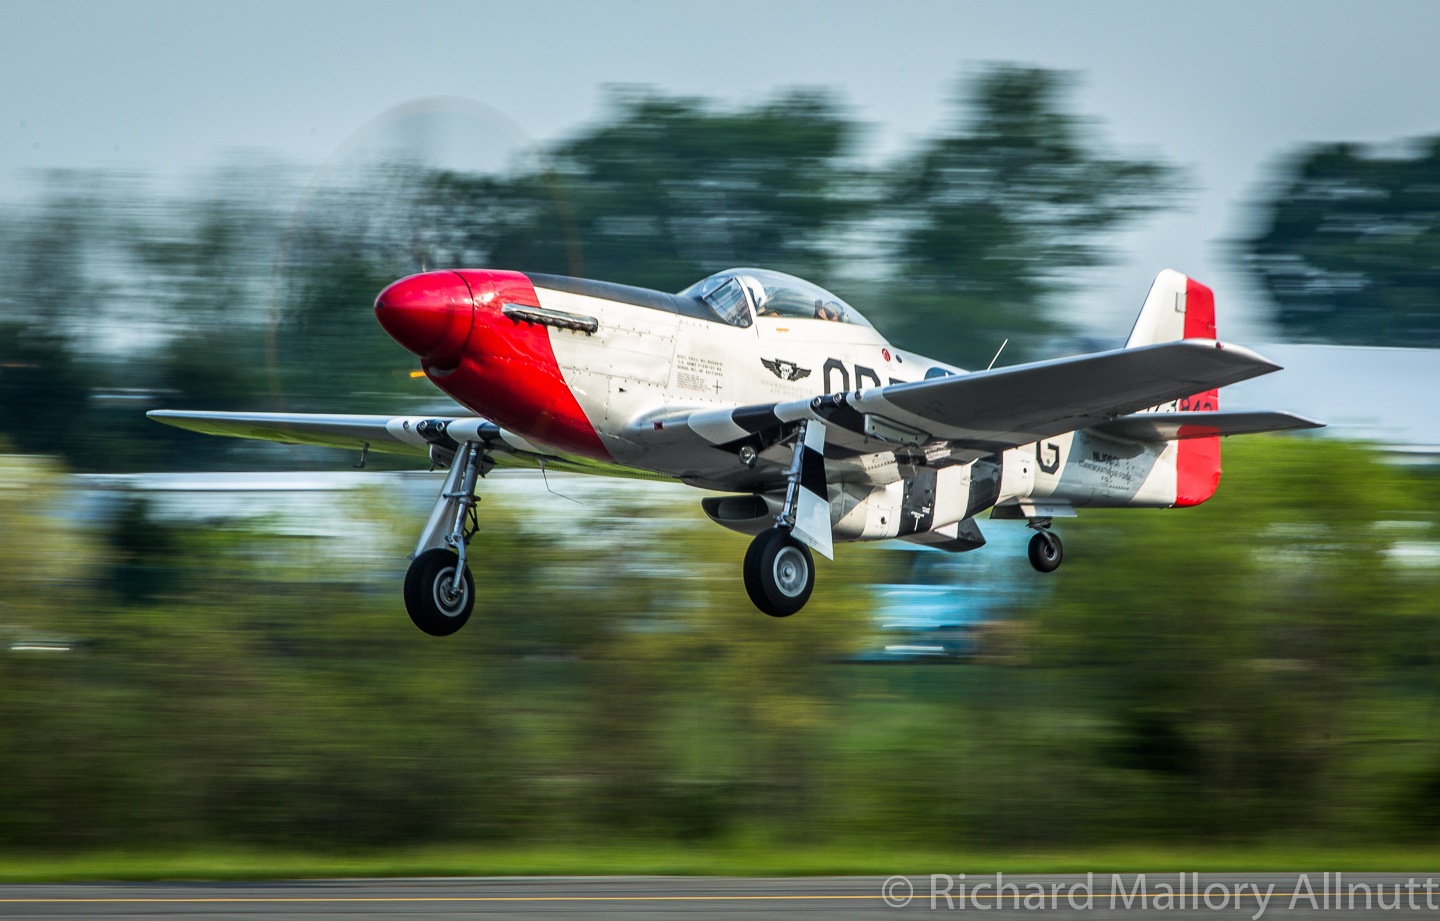 "The Dixie Wing's P-51D ""Red Nose"" will be attending Warbirds Over the Beach fresh from her triumph at the Arsenal of Democracy Flyover event in Washington, DC. Several of the Military Aviation Museum's aircraft also took part in this mammoth undertaking to celebrate the end of WWII. (photo by Richard Mallory Allnutt)"